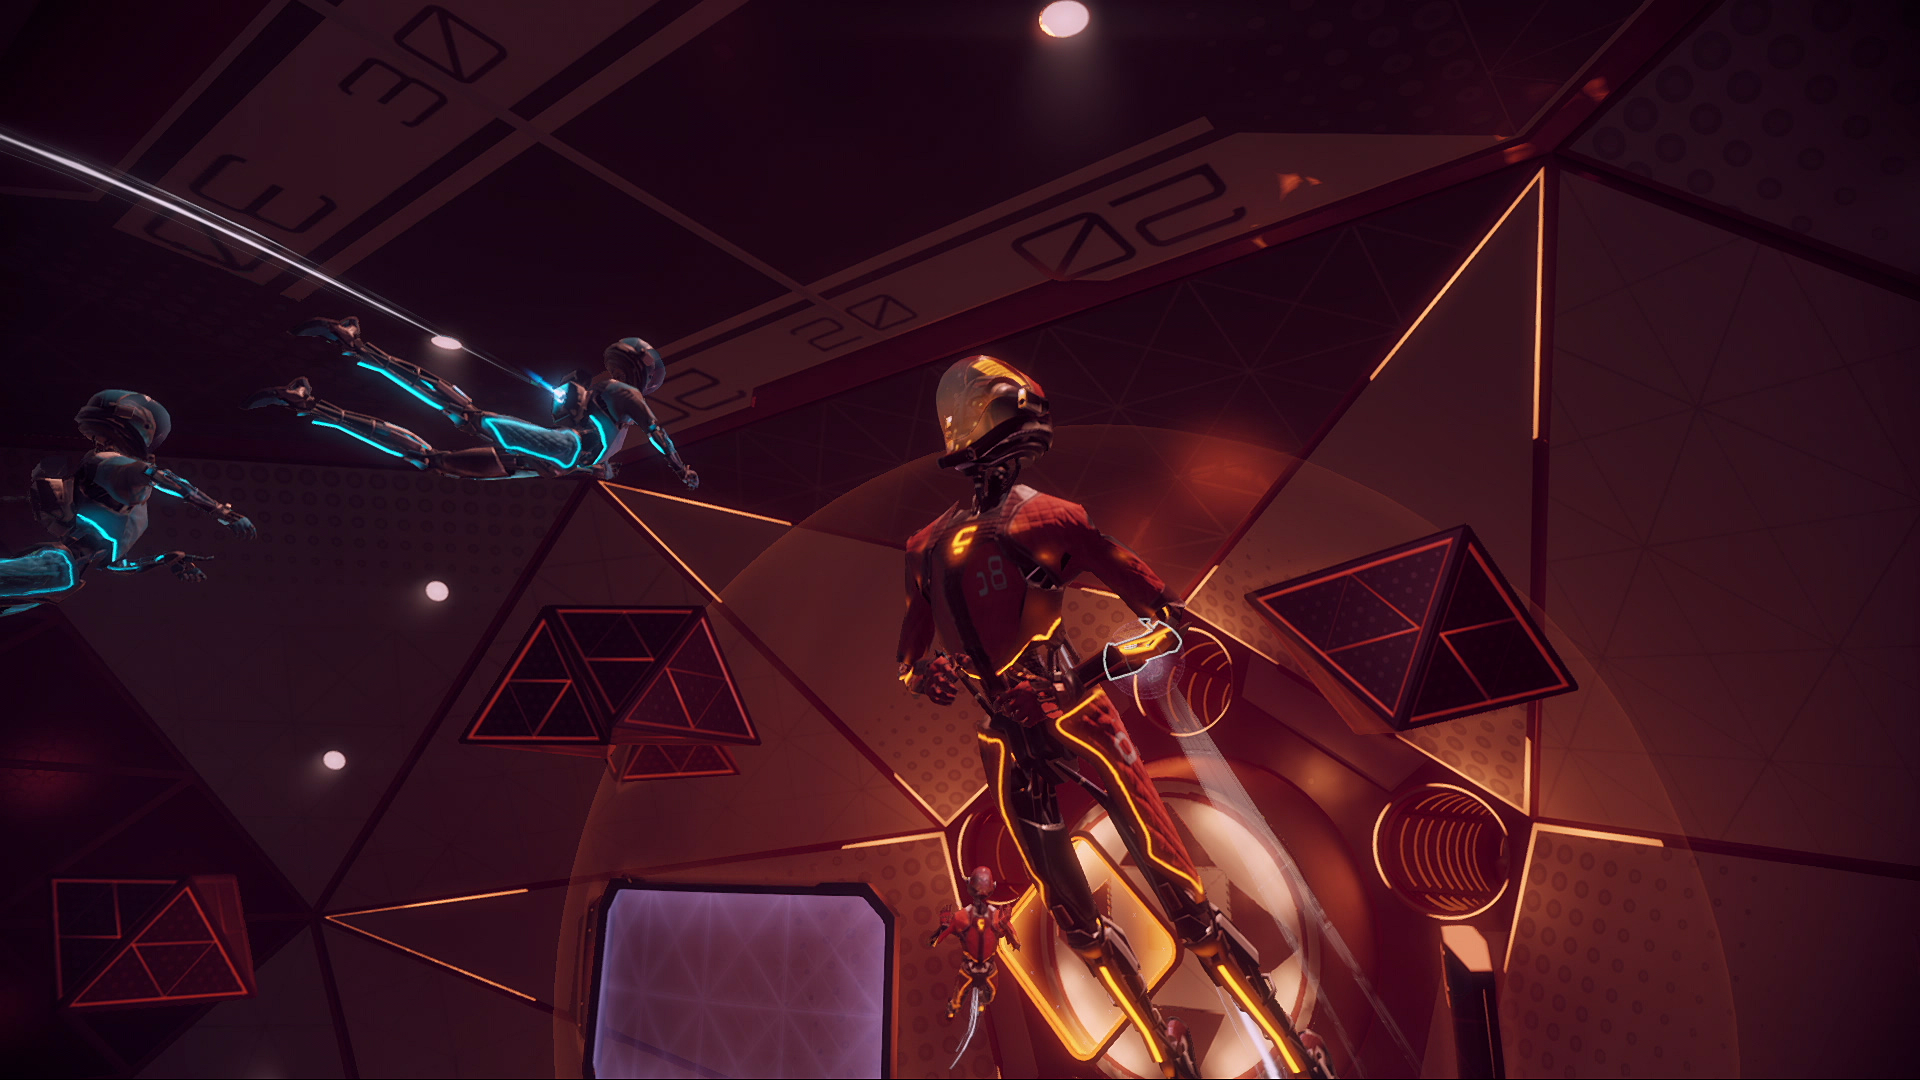 lone echo vr wallpaper 67780